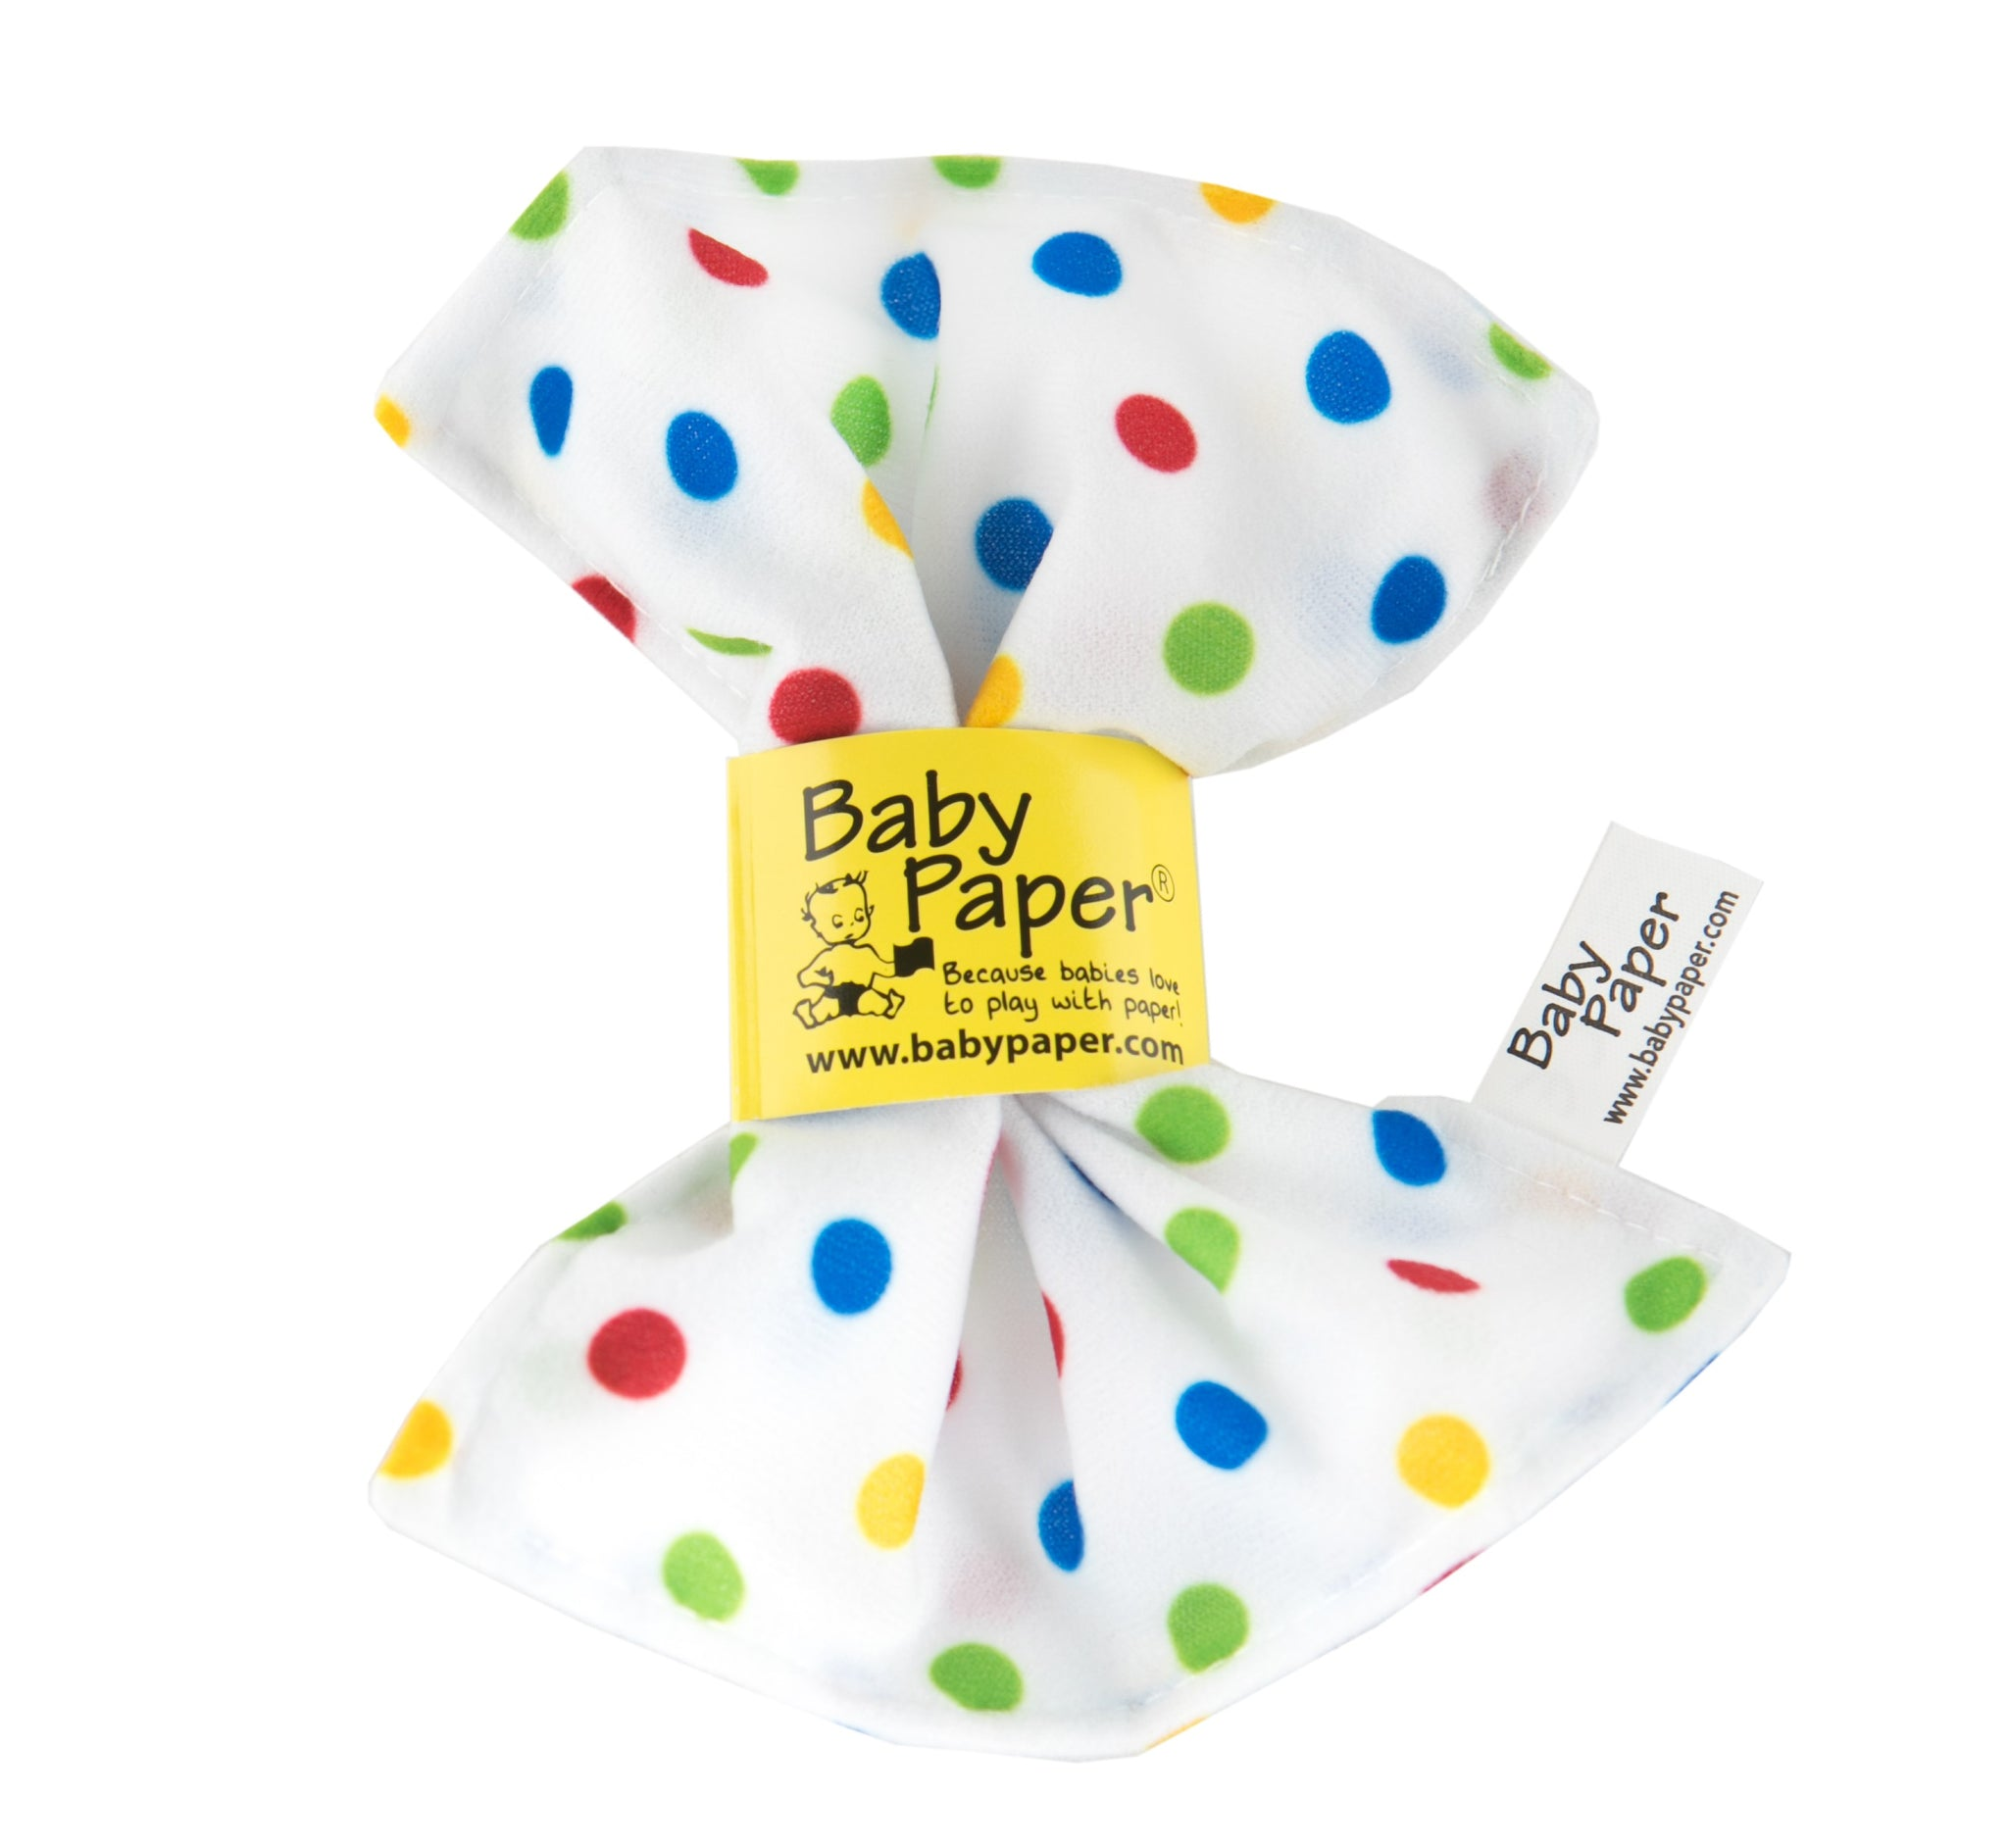 Baby Paper. Teething, crunchy paper for babies. White paper with colorful polka dots.